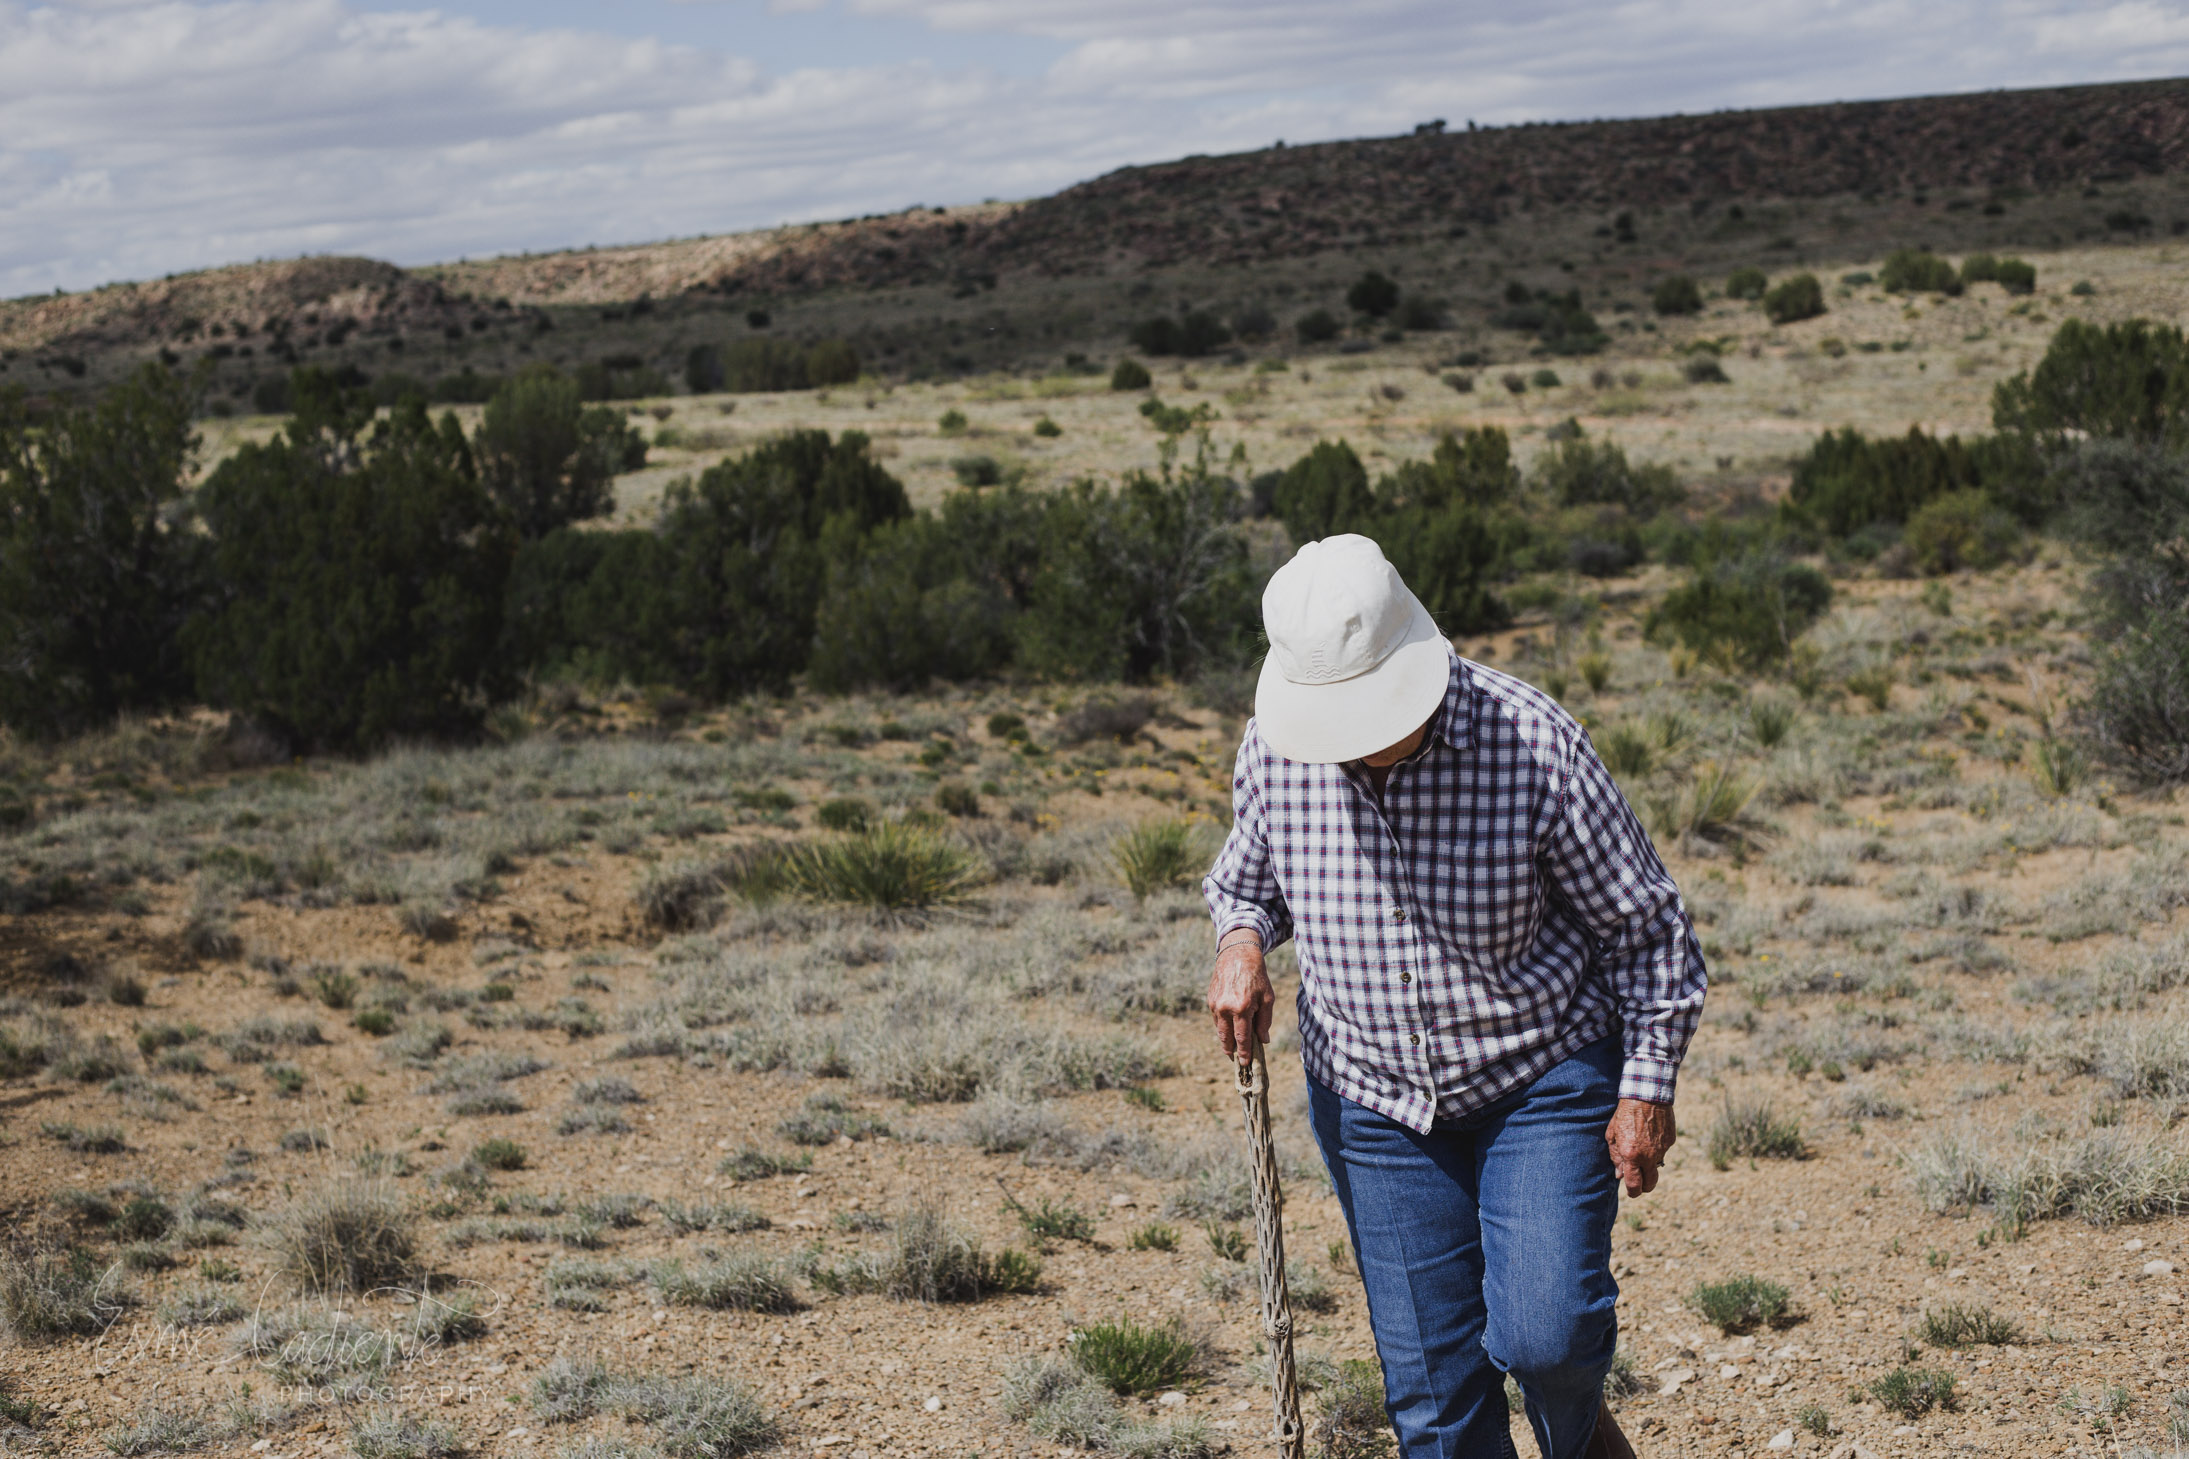 """""""One Woman's Trash is Another Woman's Treasure"""".  My grandmother uses her  cholla  walking stick to poke the ground for arrowheads. With each one she finds, she lets out a youthful proclamation of joy."""